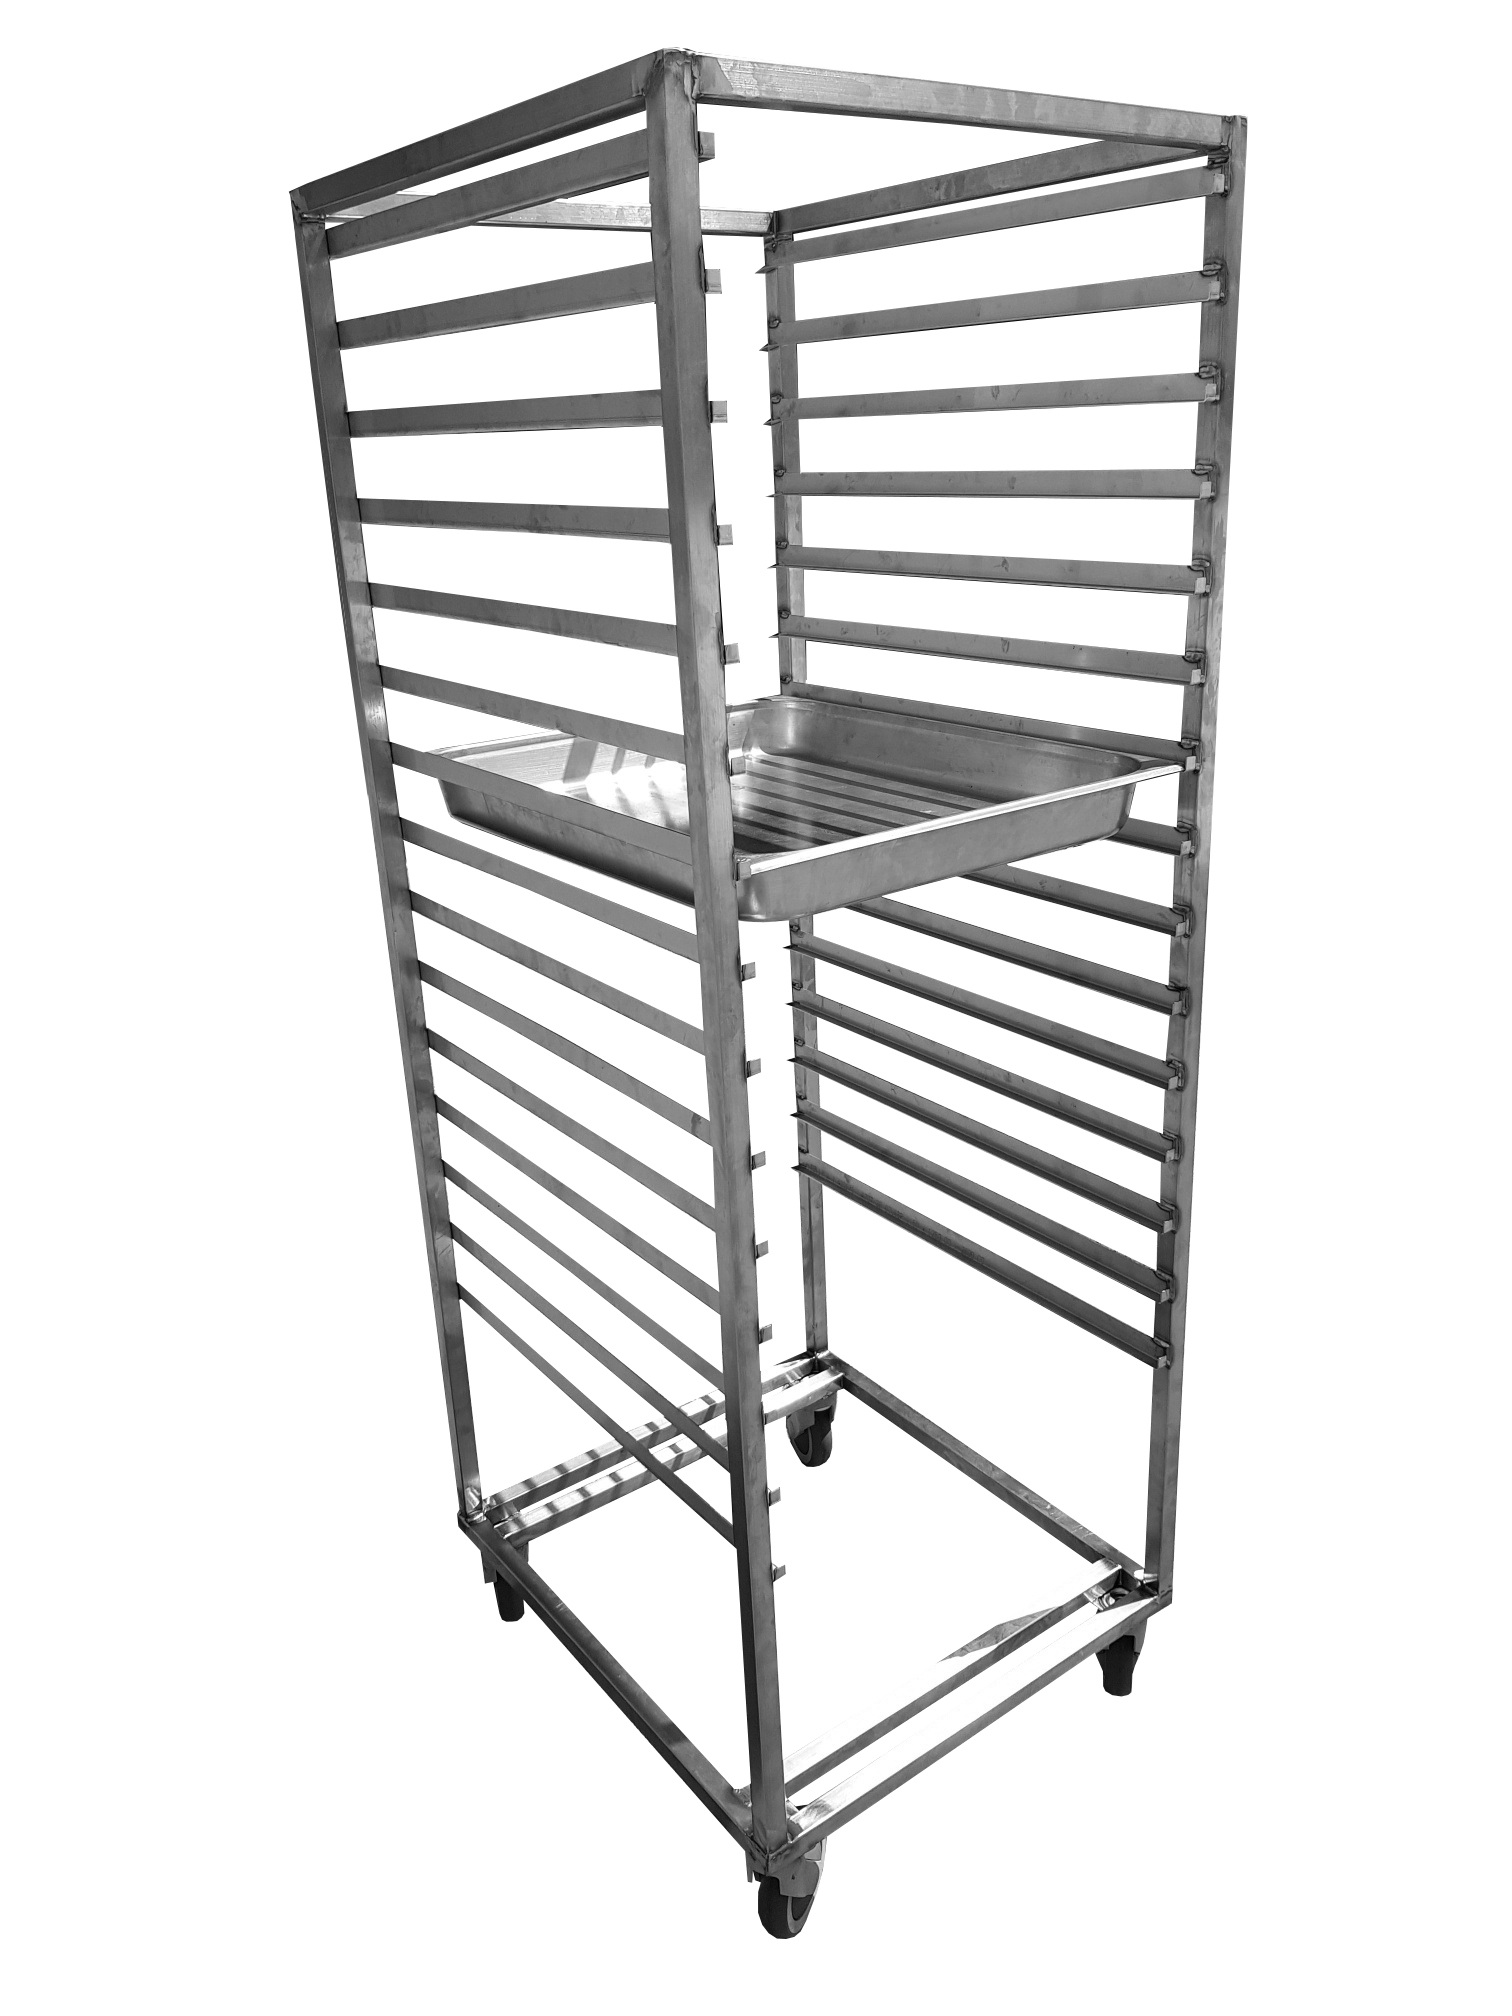 Multimesh Uk Recent Project Gastronorm Trolleys